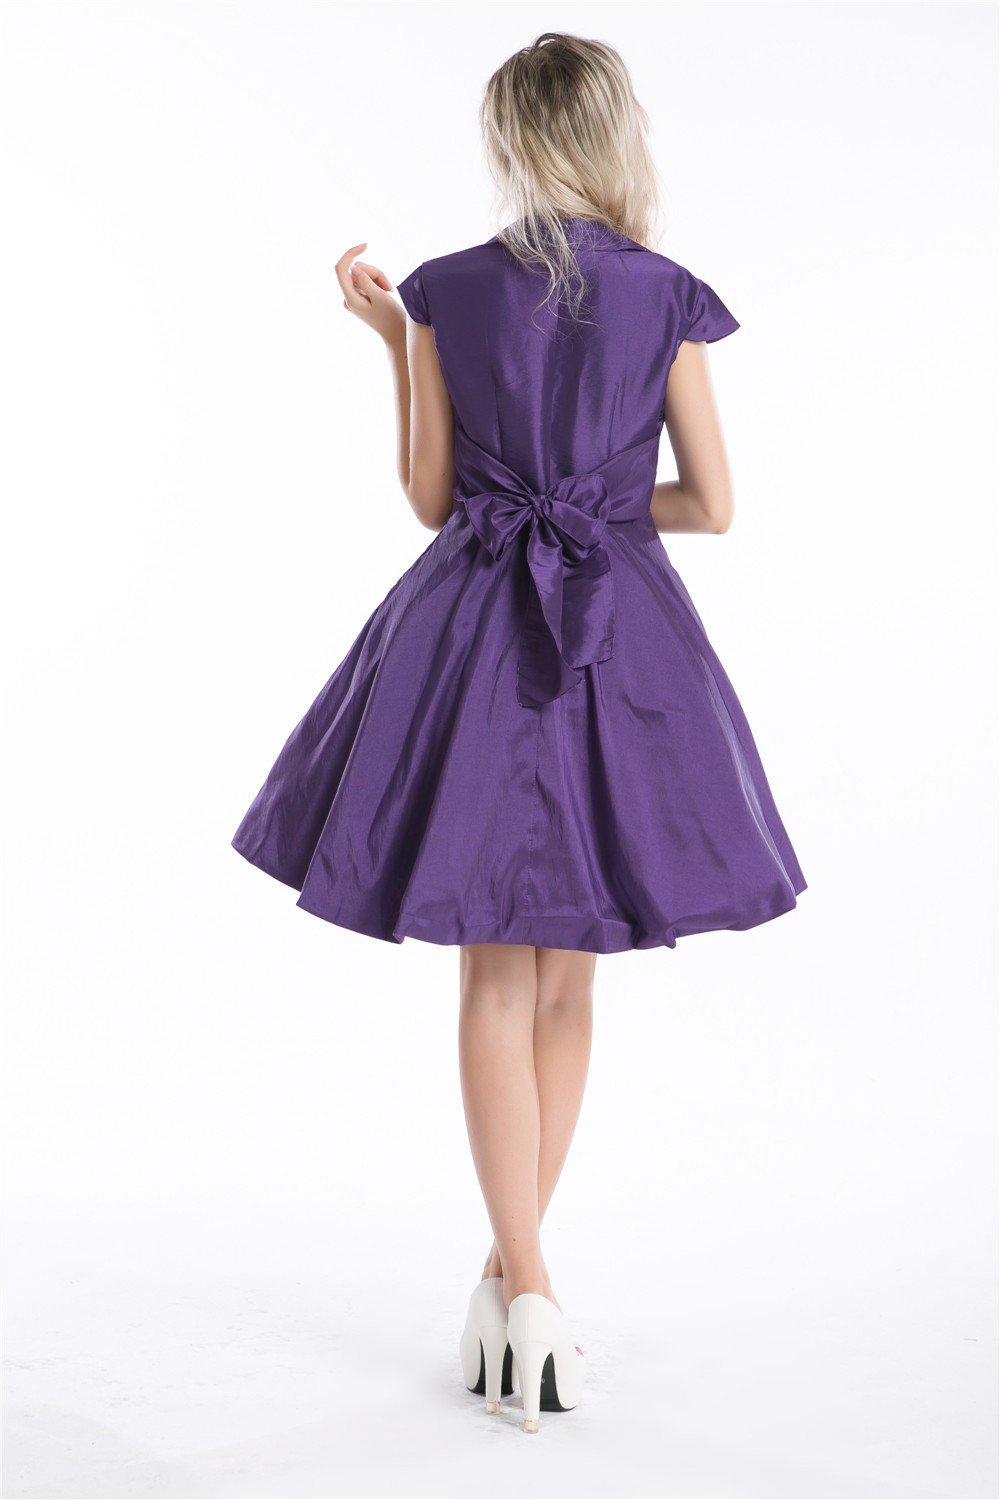 Hepburn Style Dress Red 1950s 1960s Rockabilly Swing Evening Pinup ...